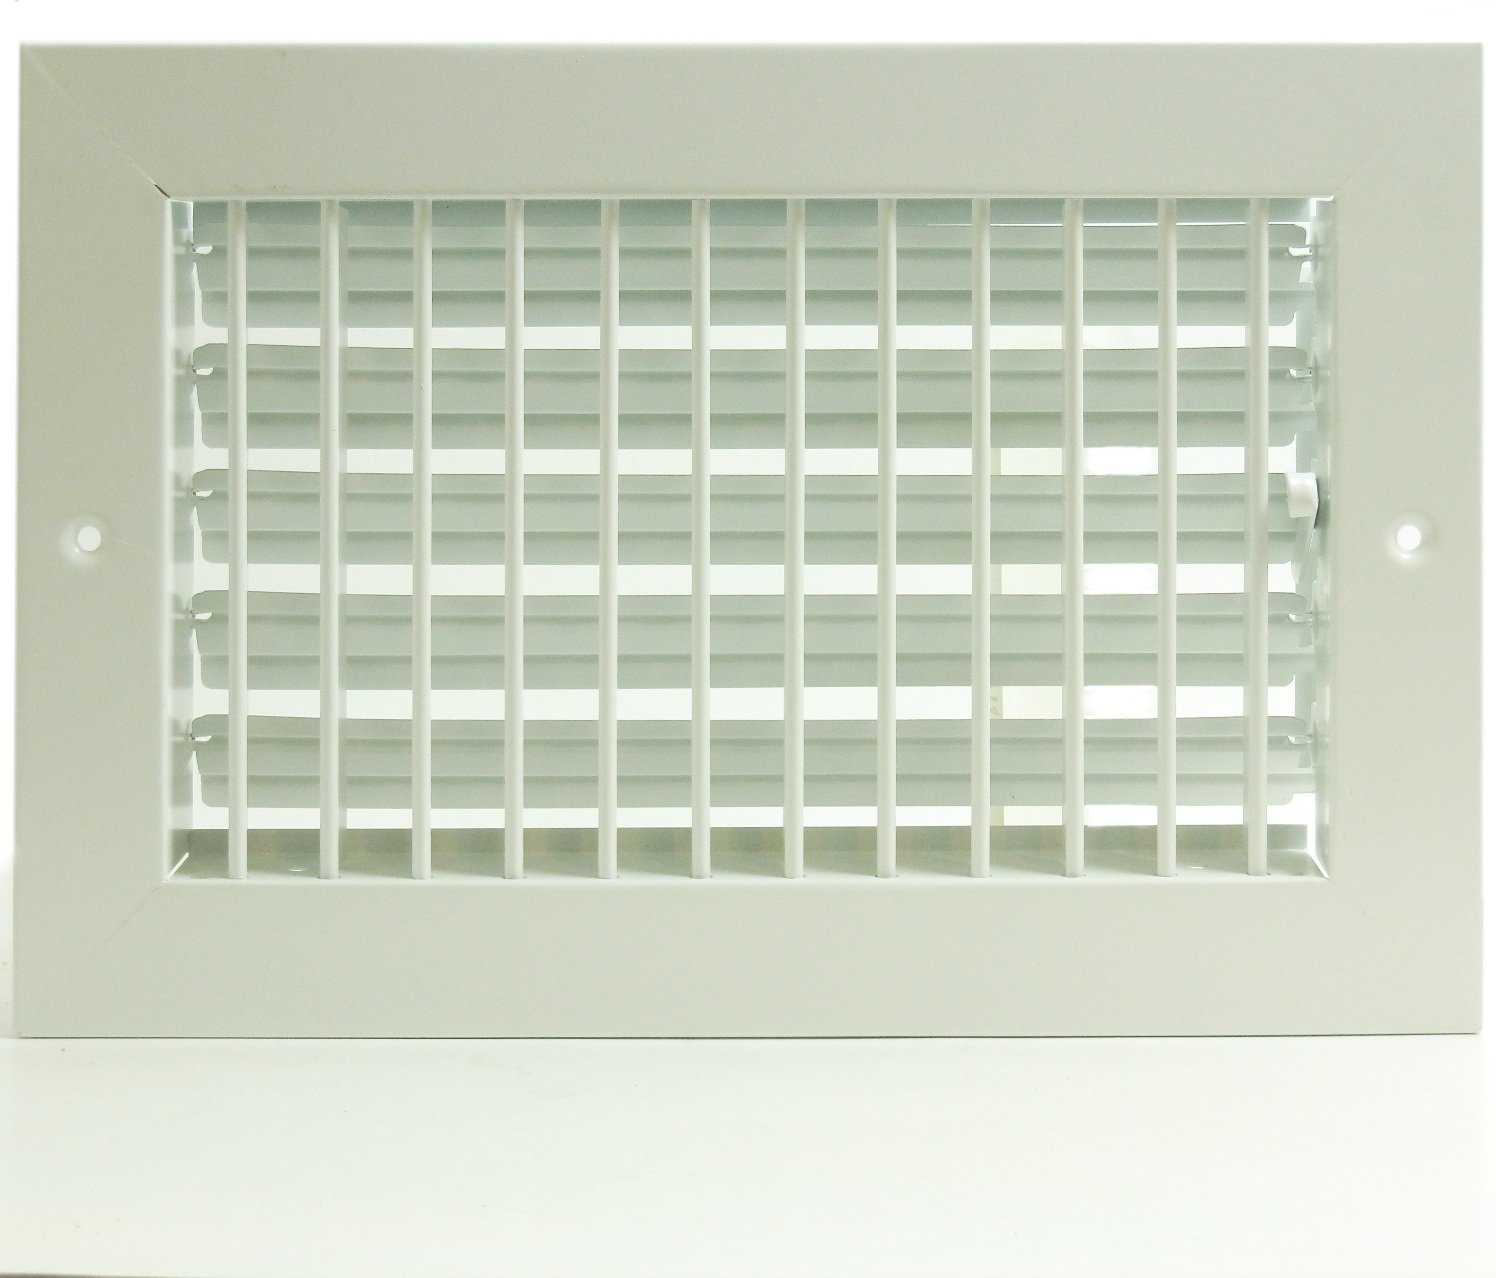 10'' x 6'' ADJUSTABLE DIFFUSER - Vent Duct Cover - Grille Register - Sidewall or Cieling - High Airflow